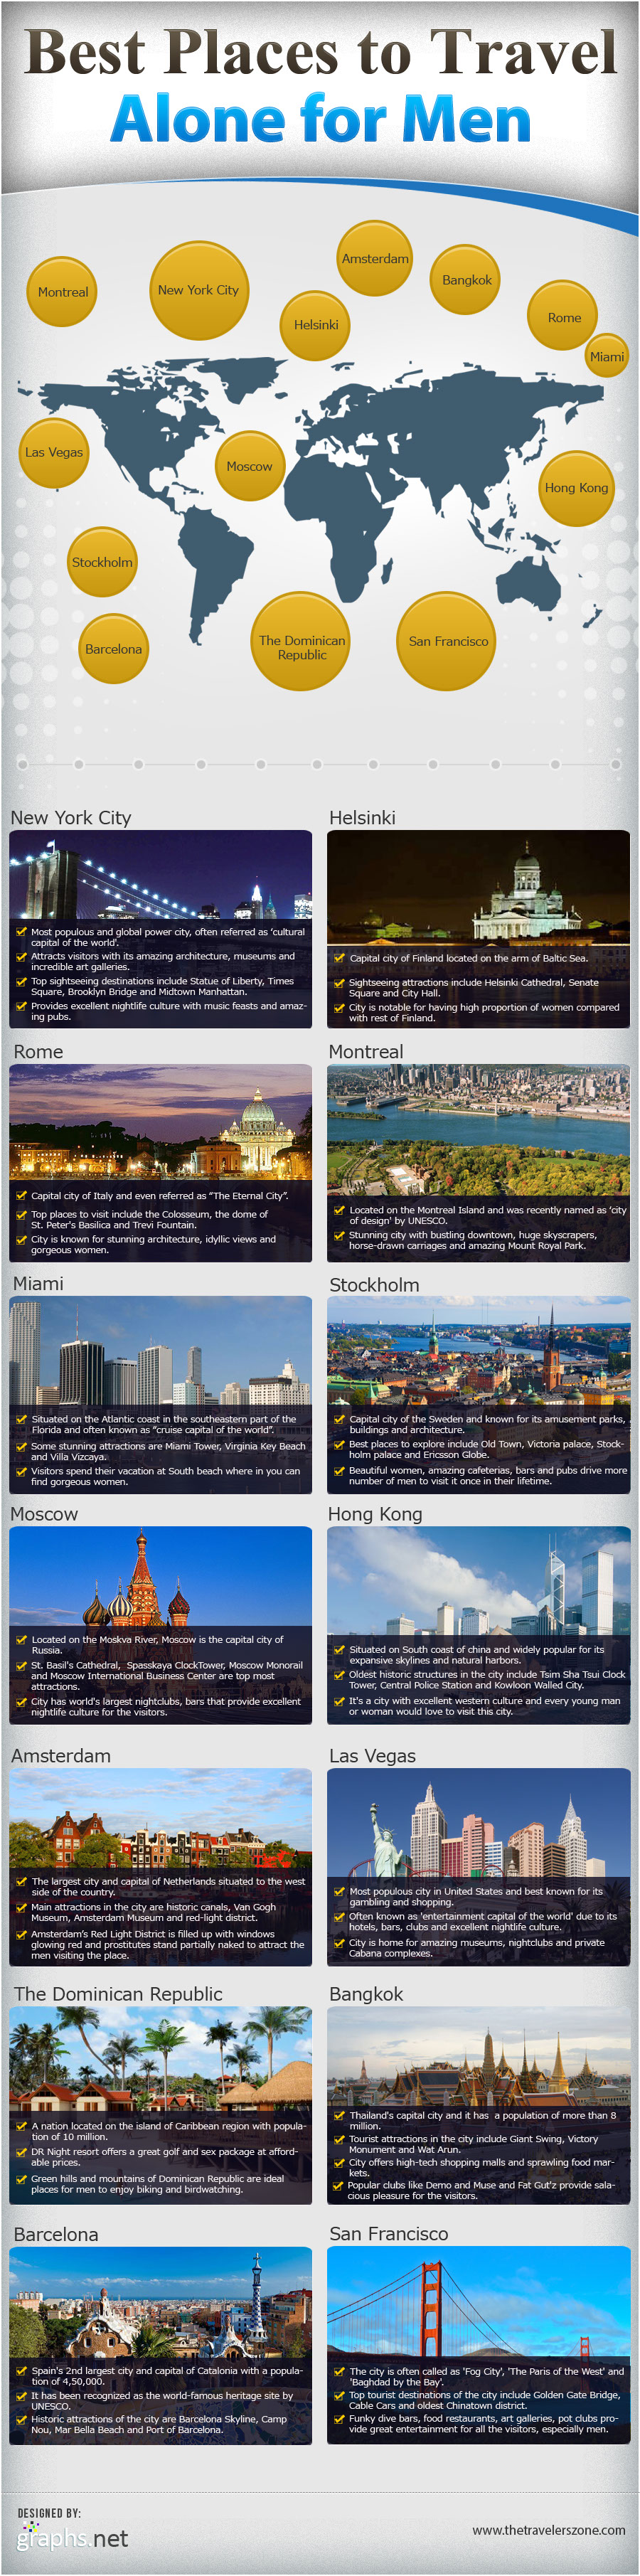 Top Travel Destinations for Men-Infographic